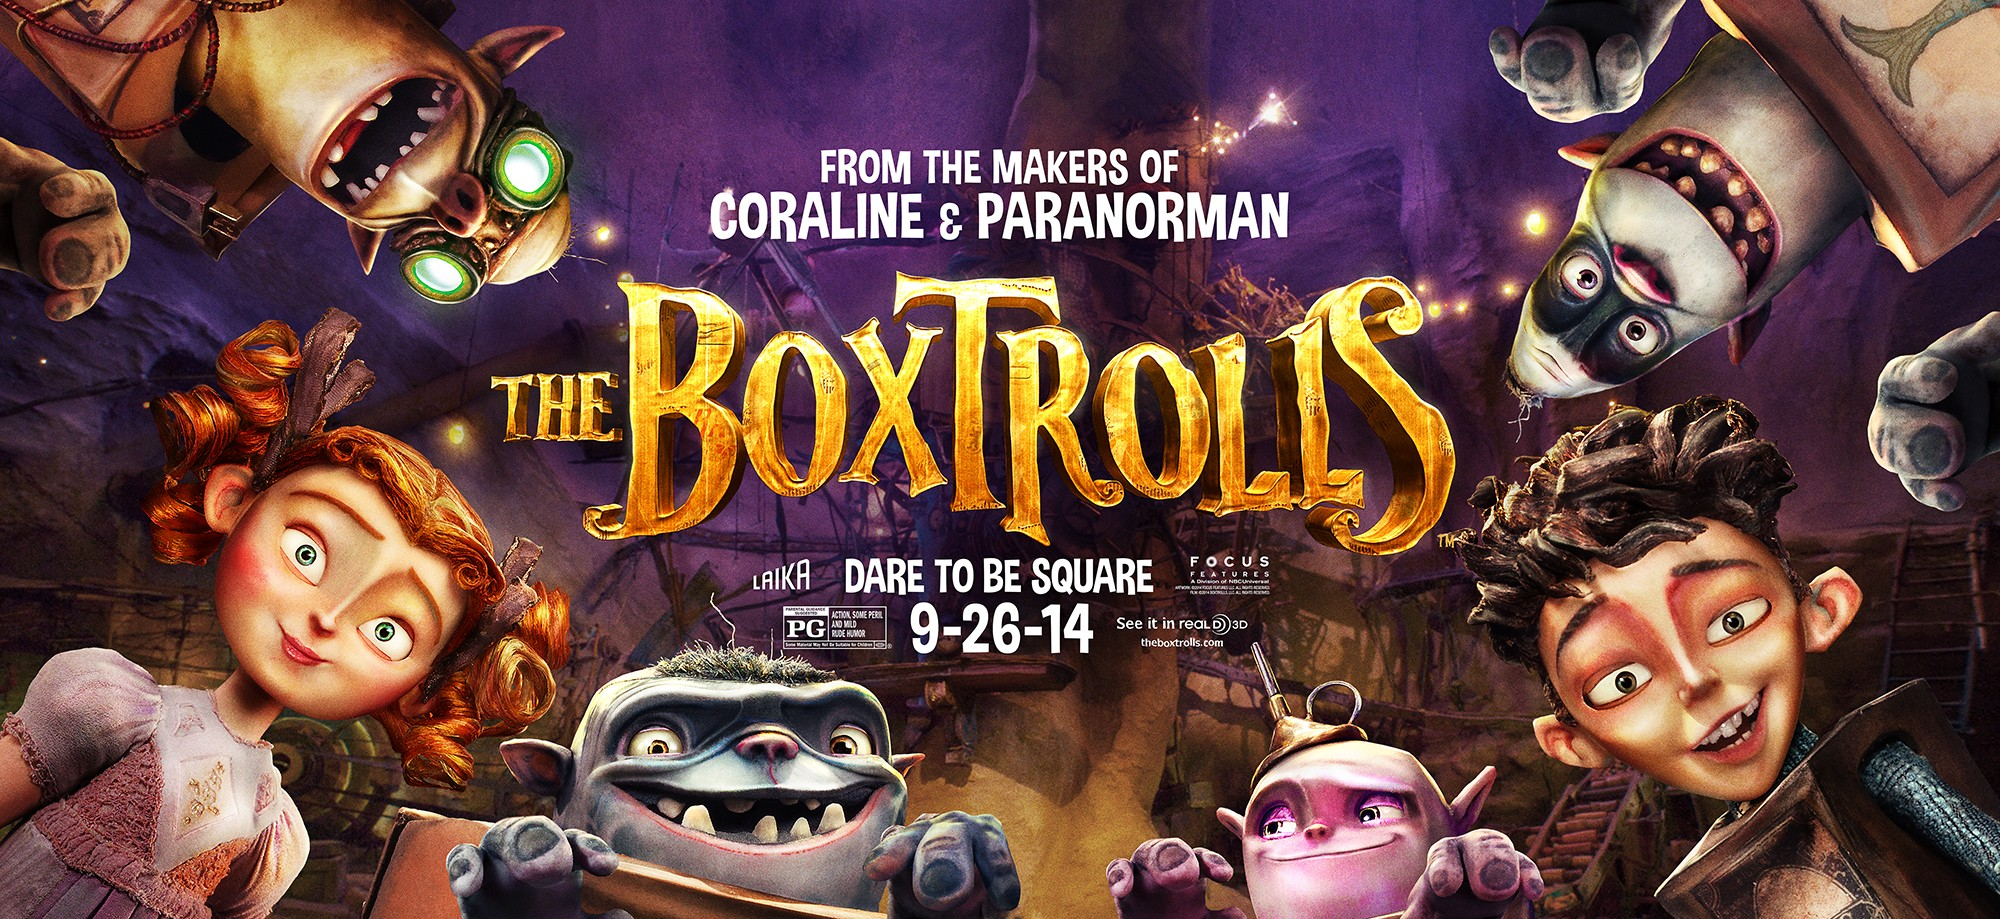 The Boxtrolls-Official Poster Banner PROMO XLG-05SETEMBRO2014-02